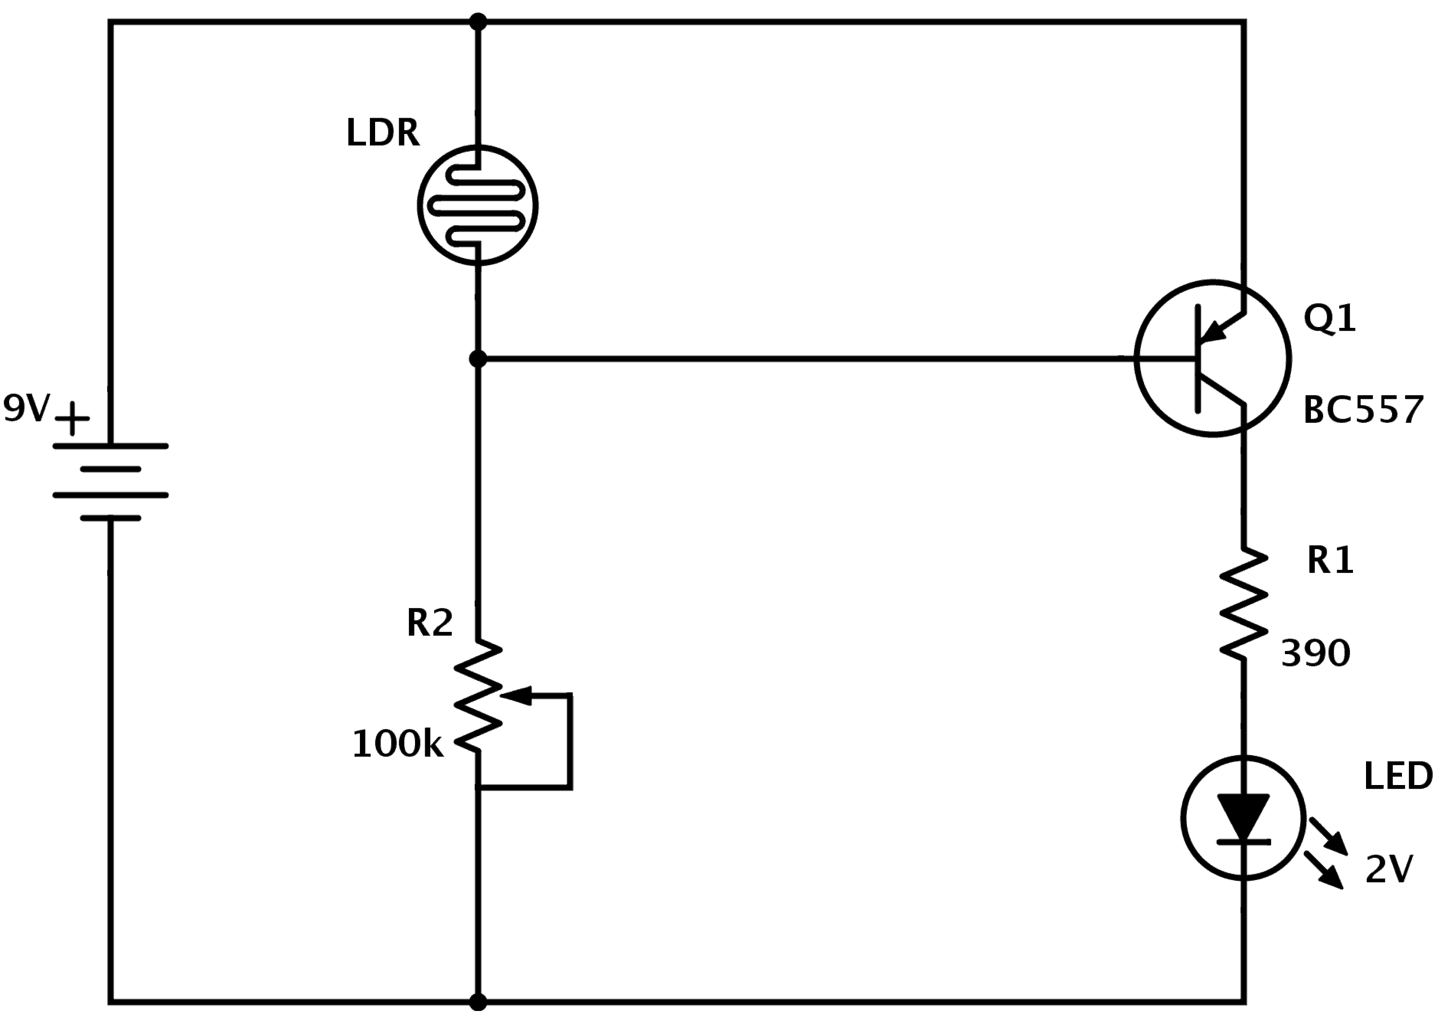 Ldr Circuit Diagram Build Electronic Circuits Motor Control Together With Load Cell Pnp Transistor Dark Detector